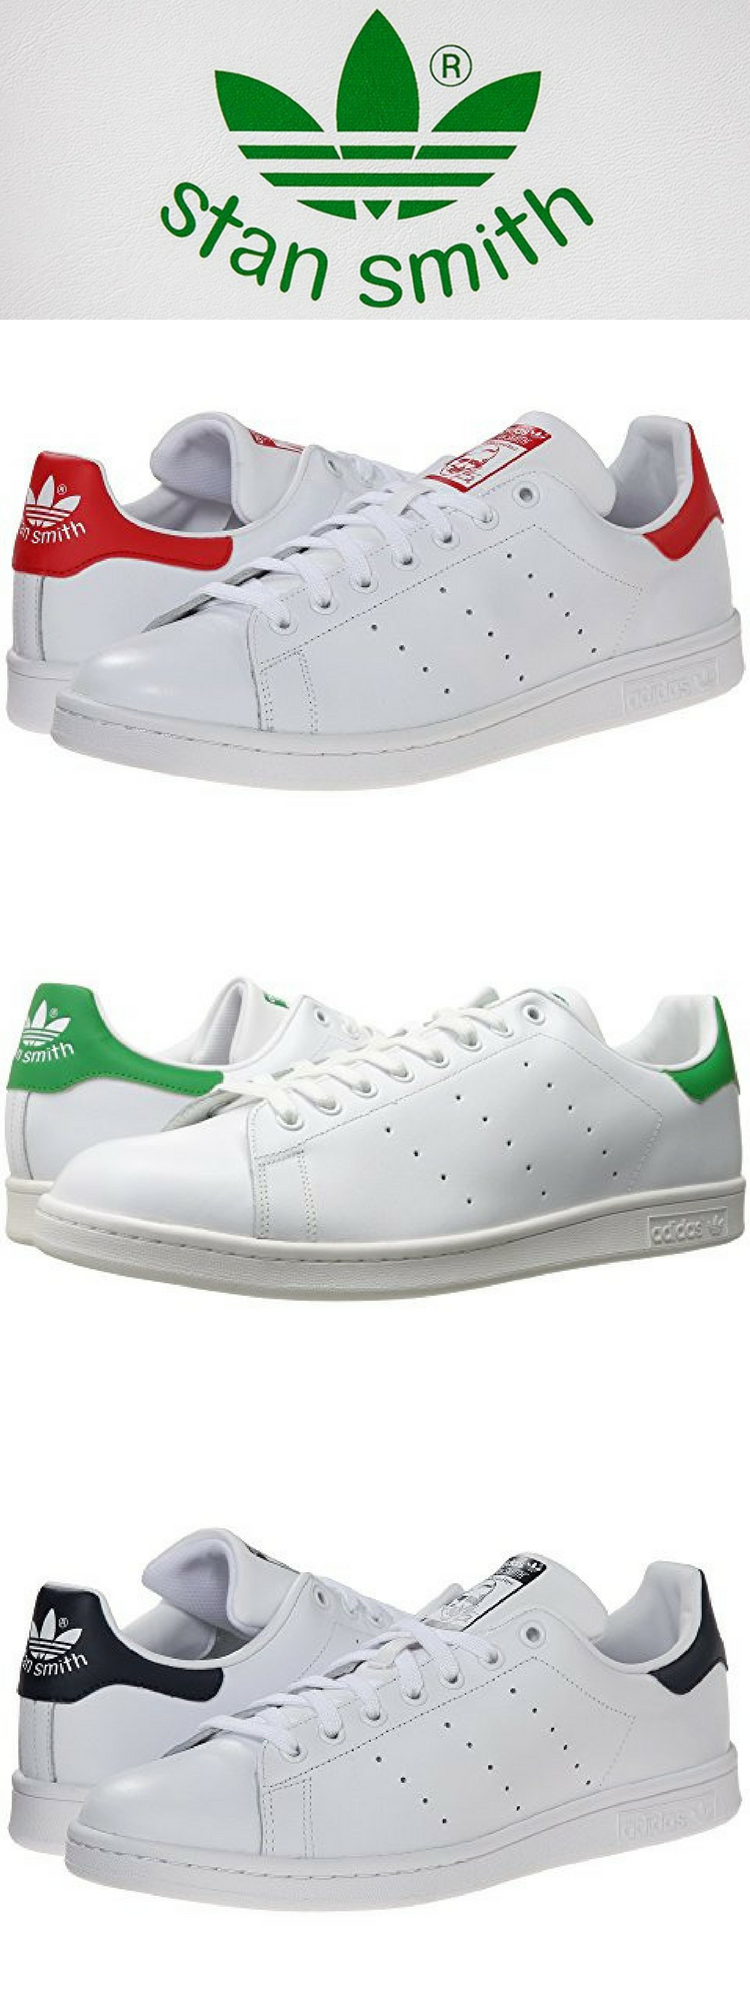 Adidas Originals Stan Smith Men's Classic Shoes | Zapatos